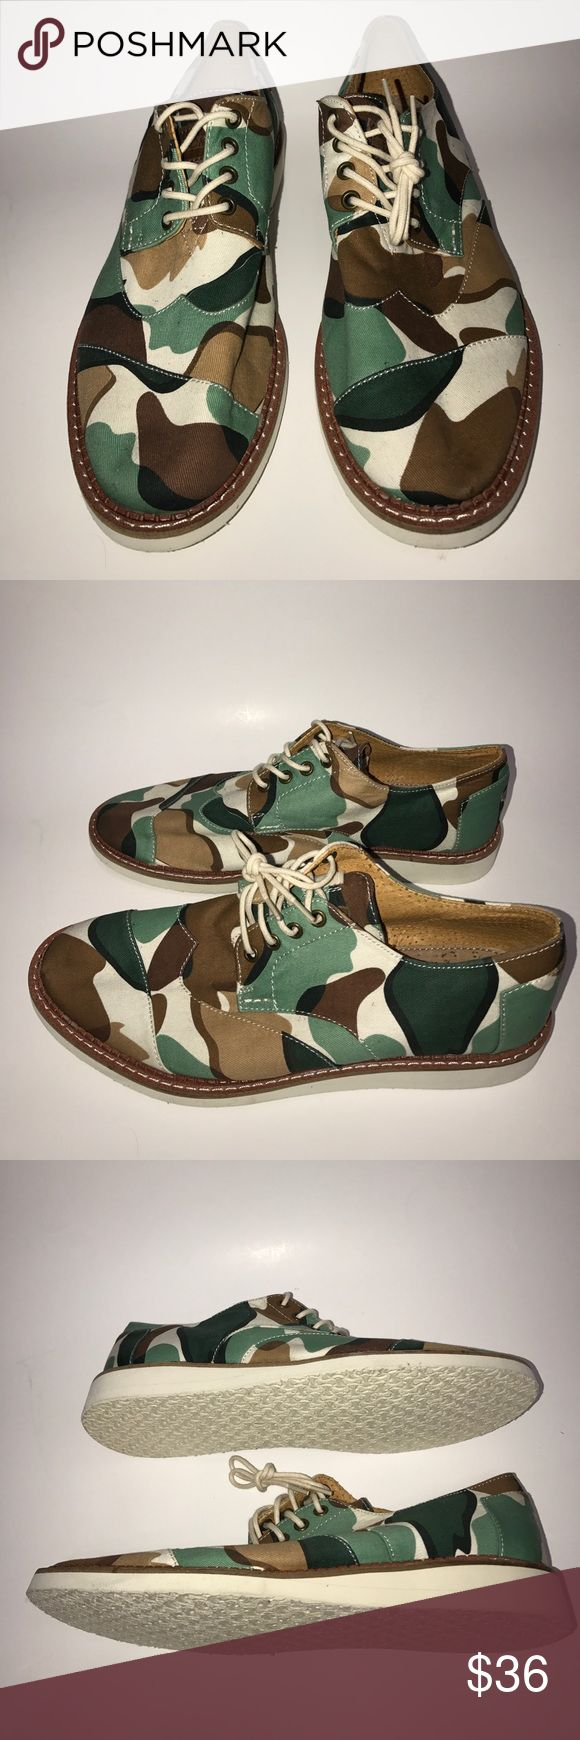 "TOMS Camo men shoe size 9.5 New Toms men camo shoe size 9.5. TOMS "" with every pair you purchased TOMS will give a pair of new shoe to a child in need."" Toms Shoes Chukka Boots"